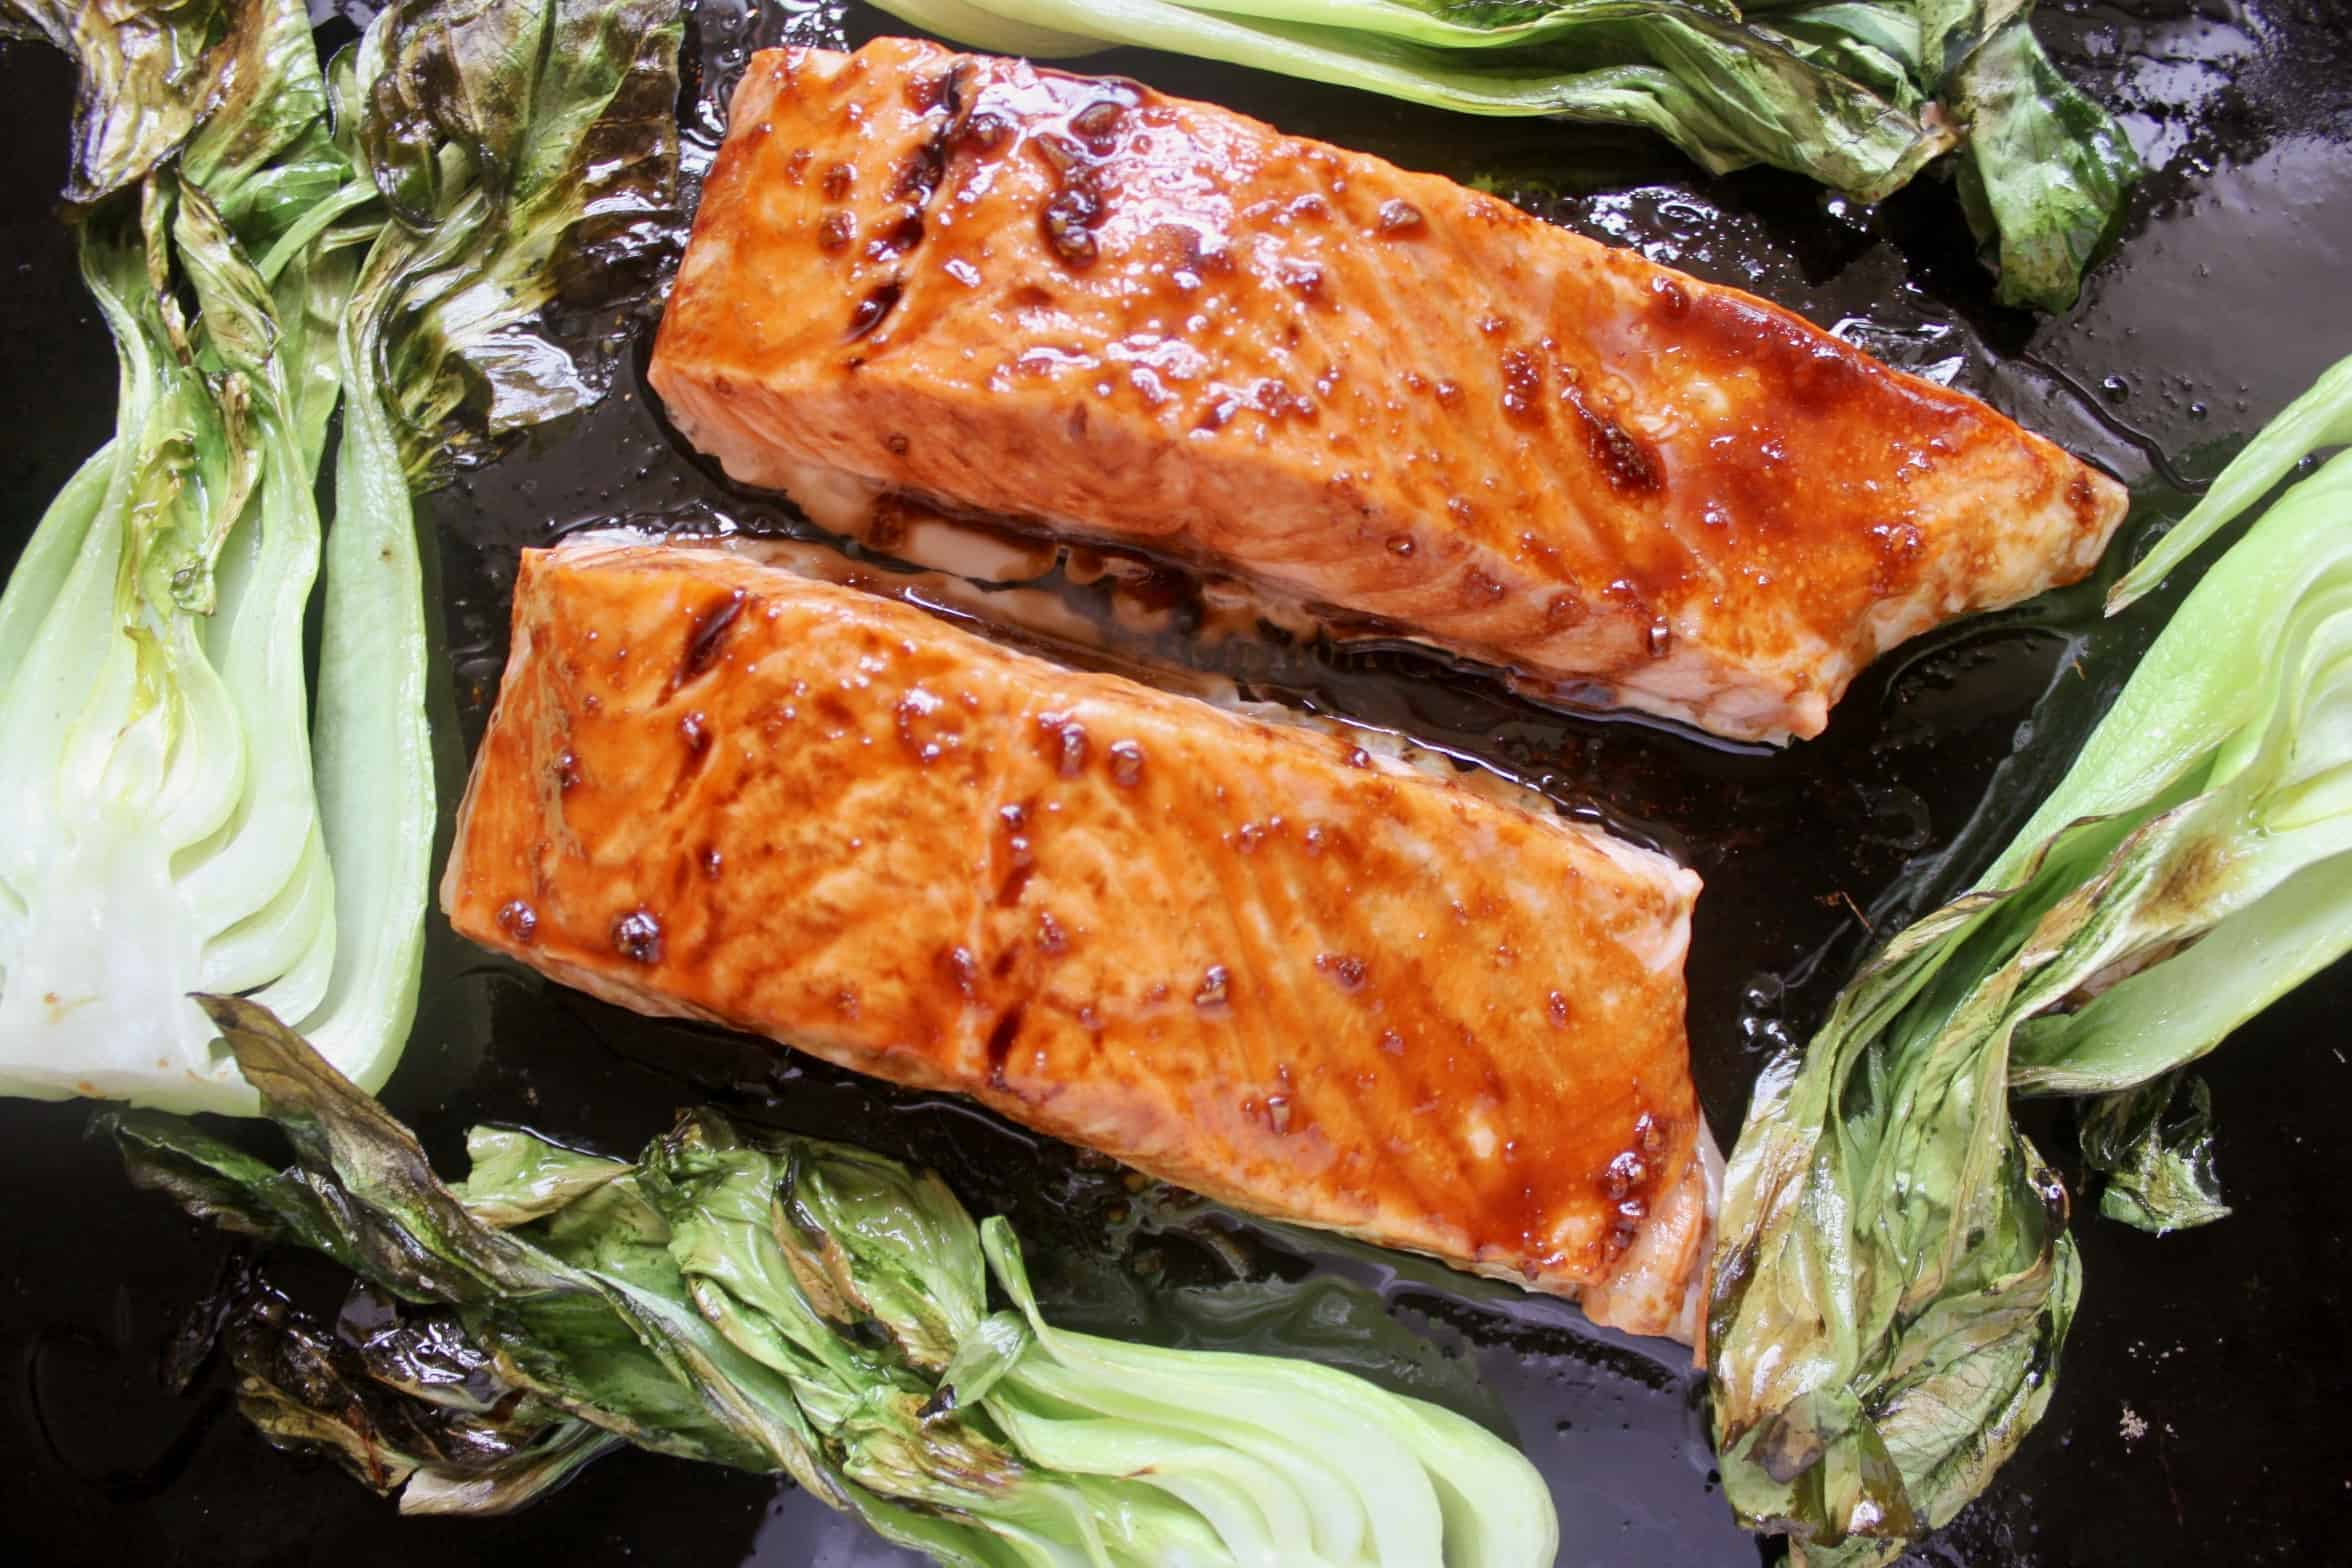 maple glazed salmon with bok choy on tray